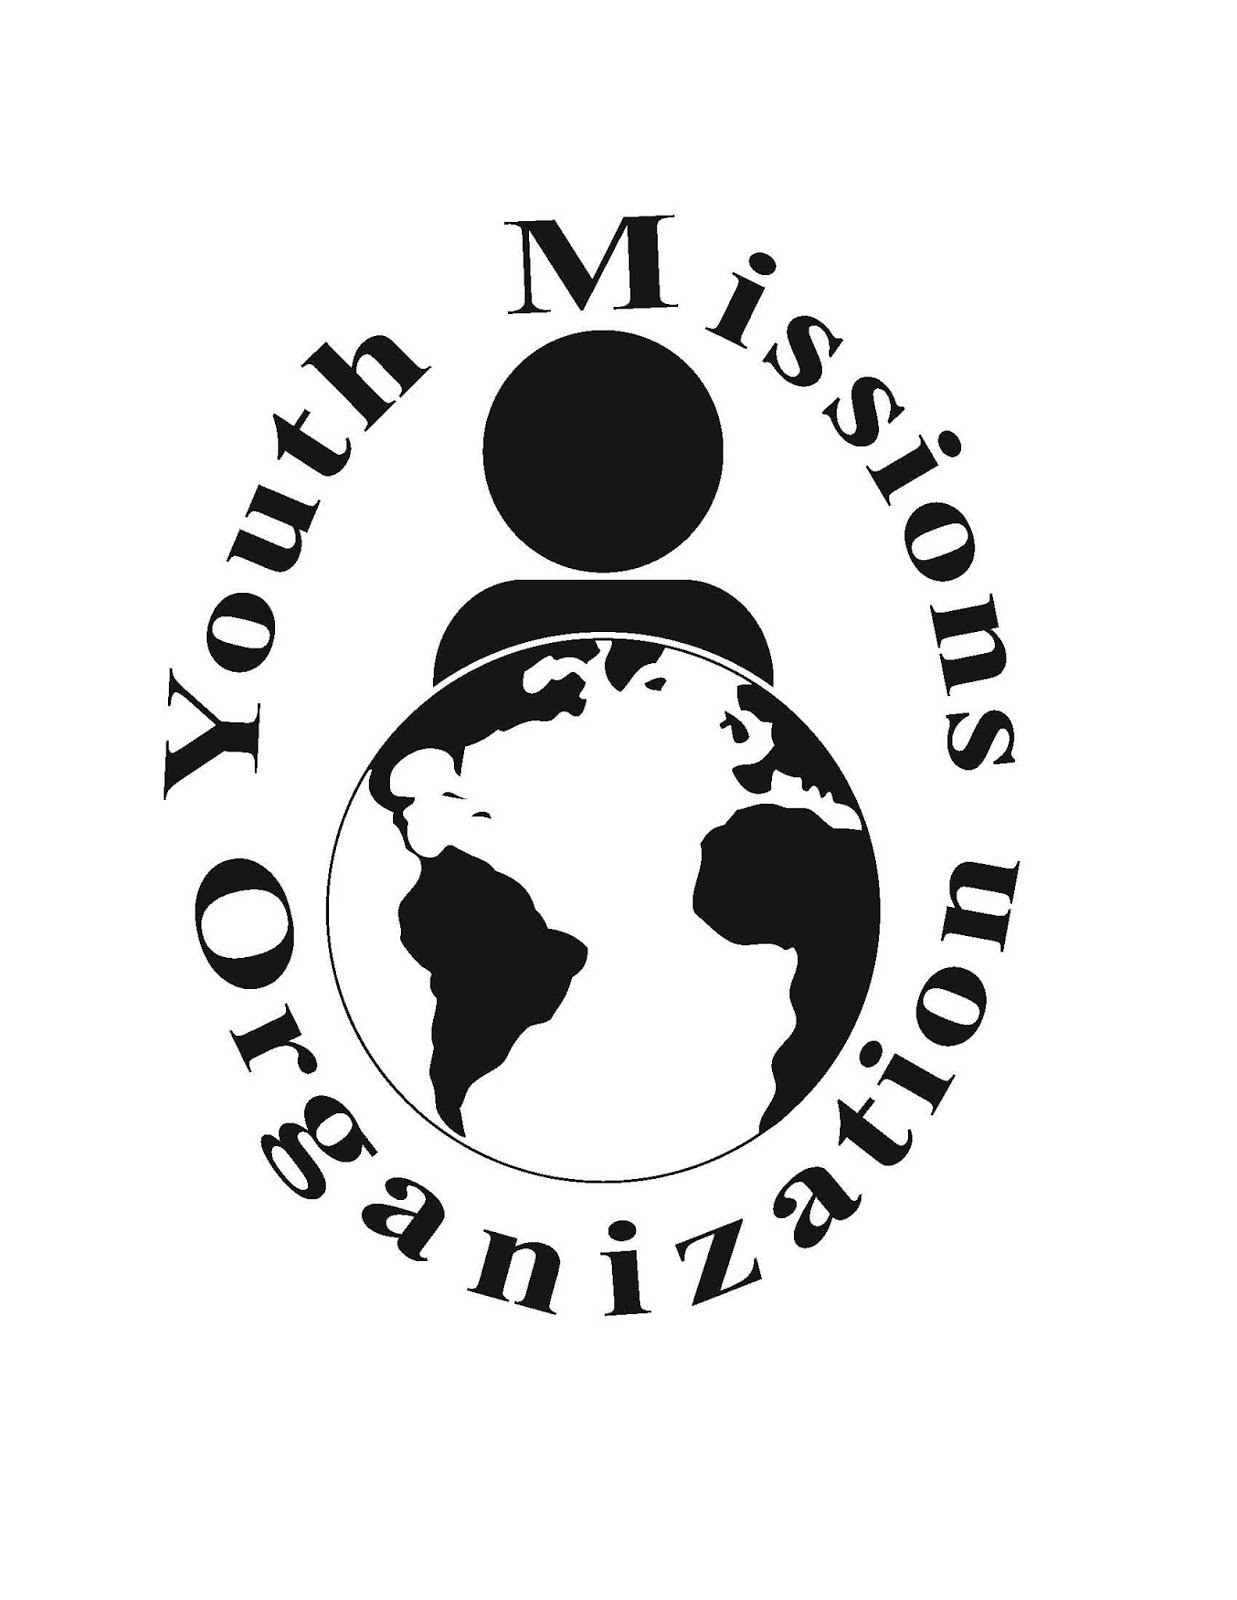 YMO Missions: ABOUT YMO